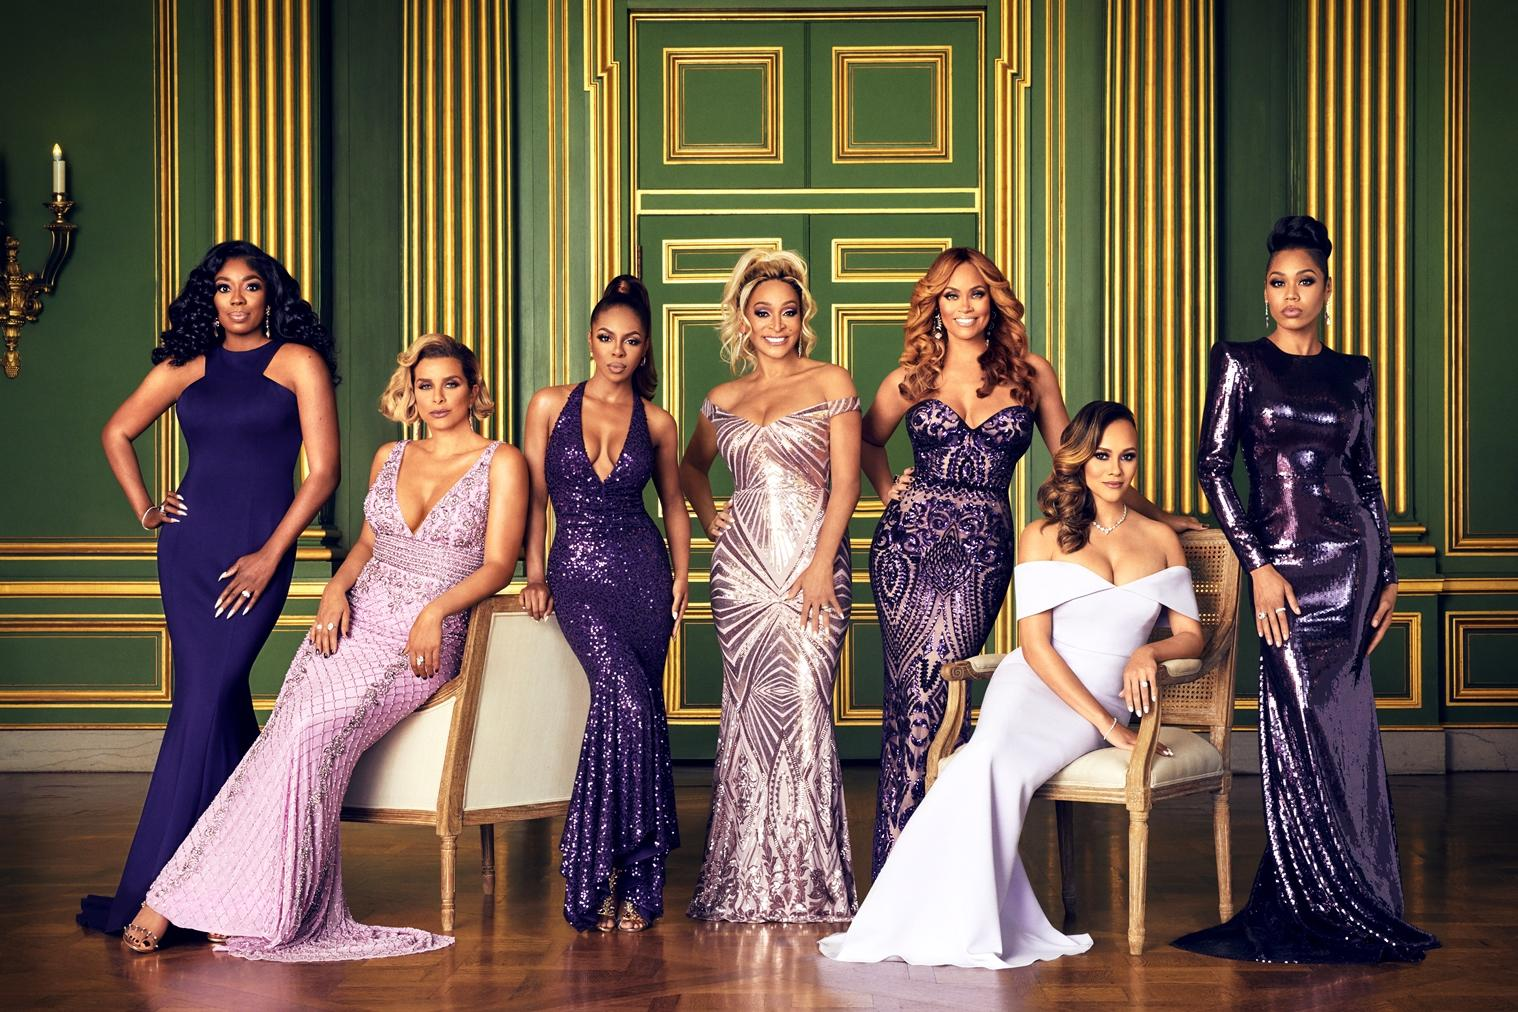 Real Housewives Of Potomac Season Five Trailer Released: Gizelle and Jamal Bryant Reunion, Michael Darby Scandal, And Monique Samuels And Candiace Dillard Feud All Addressed